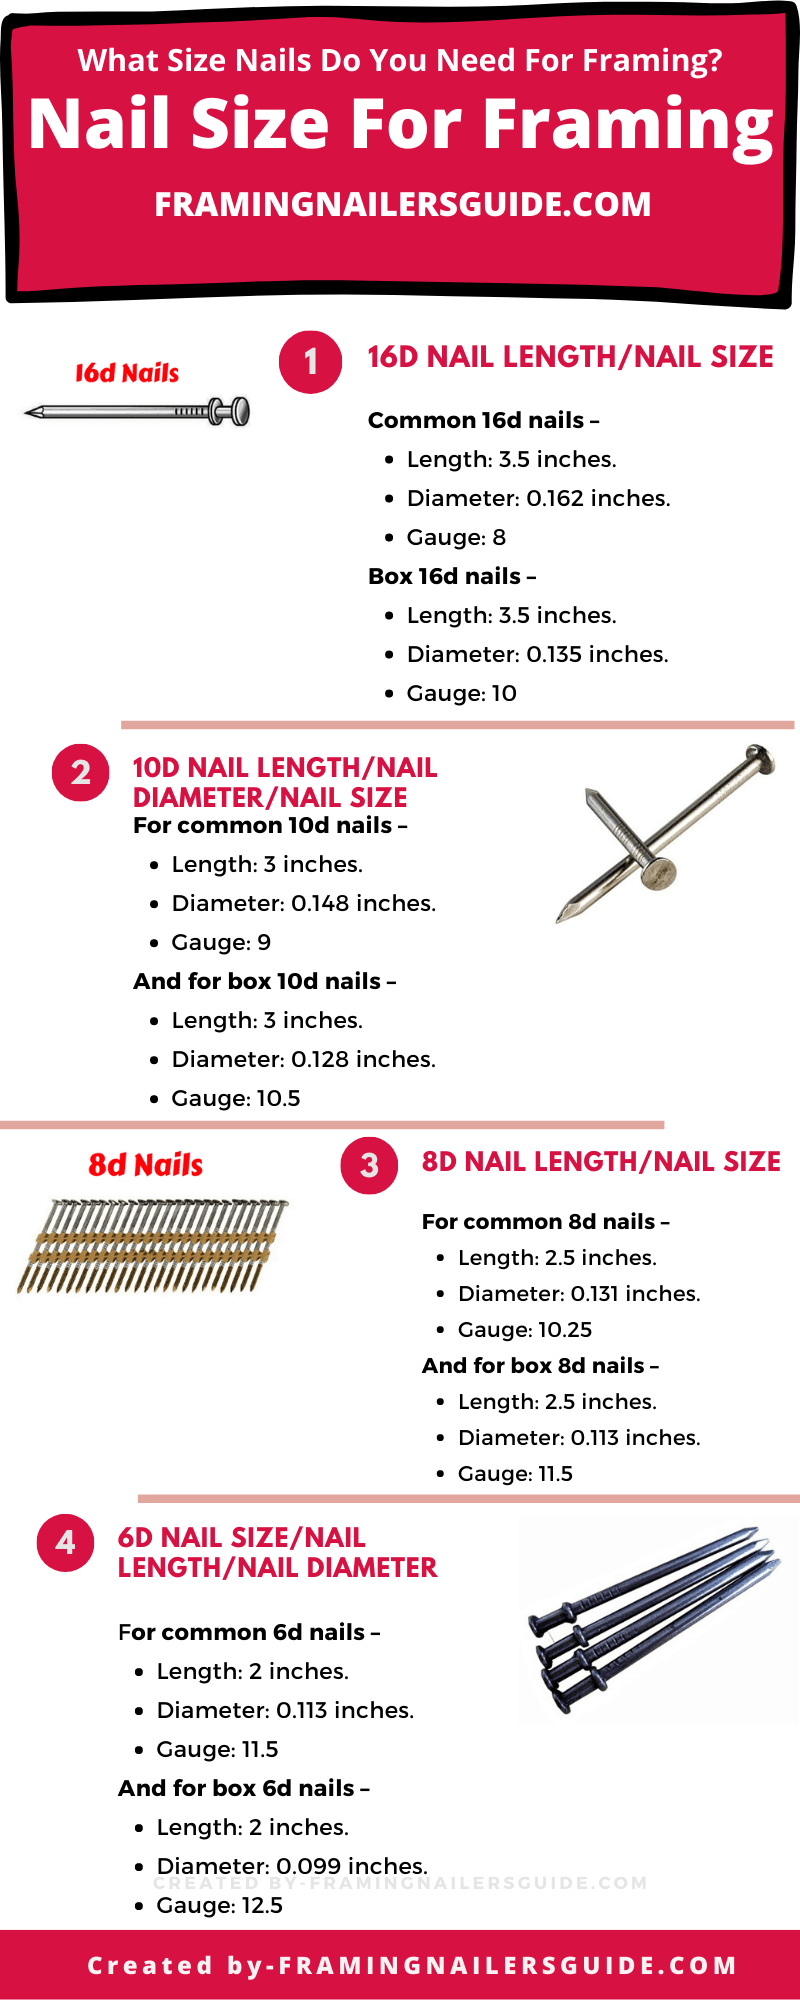 What Size Nails Do You Need For Framing?